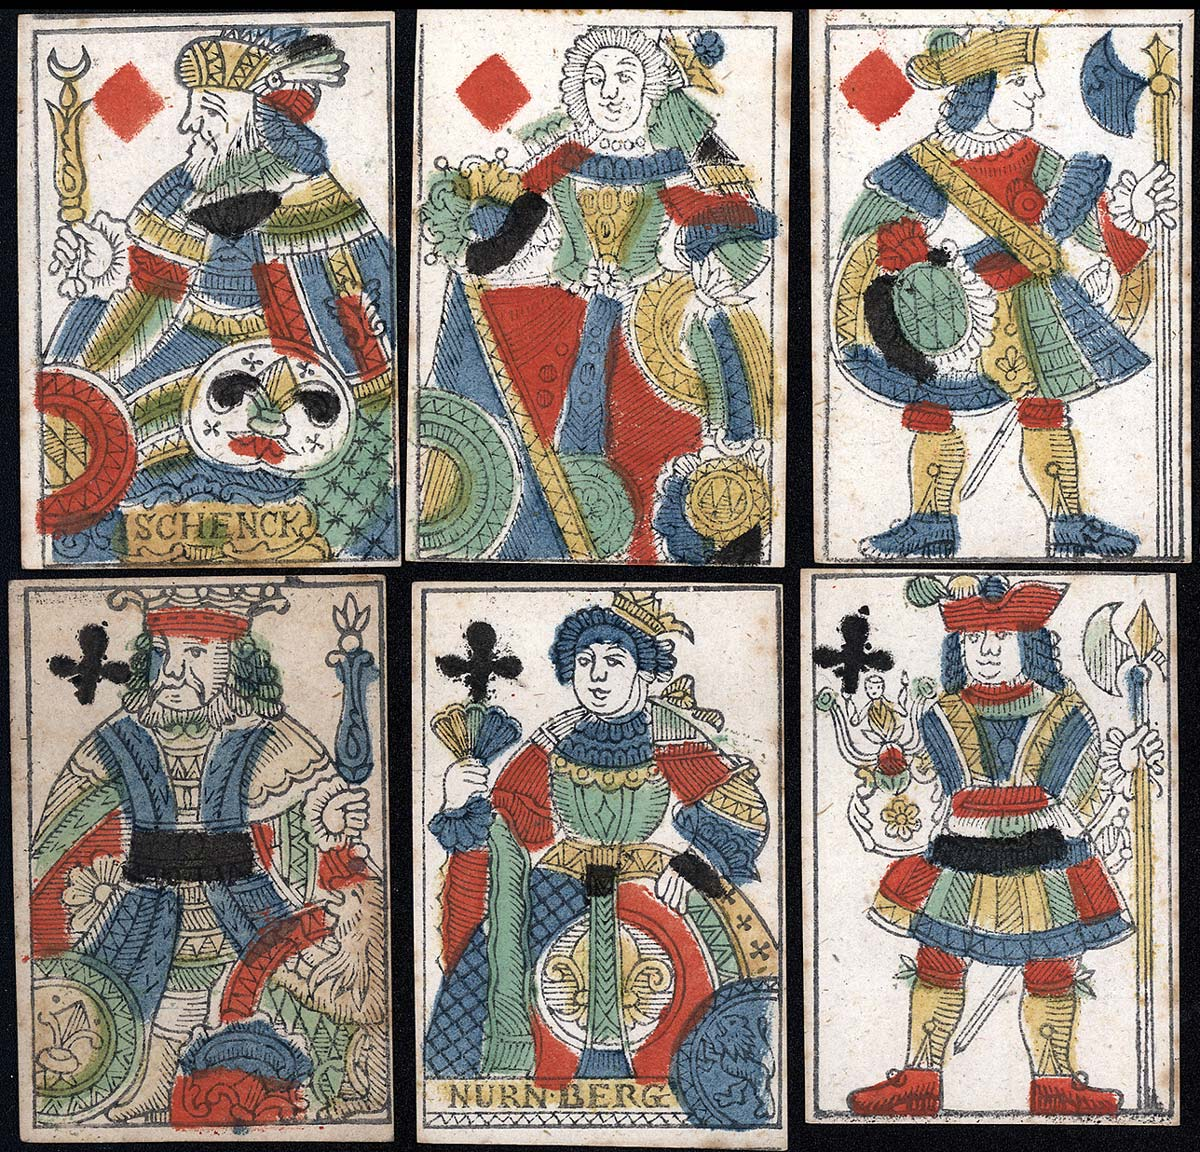 playing cards by I. Schenck, Nuremberg, late XVIIIth century